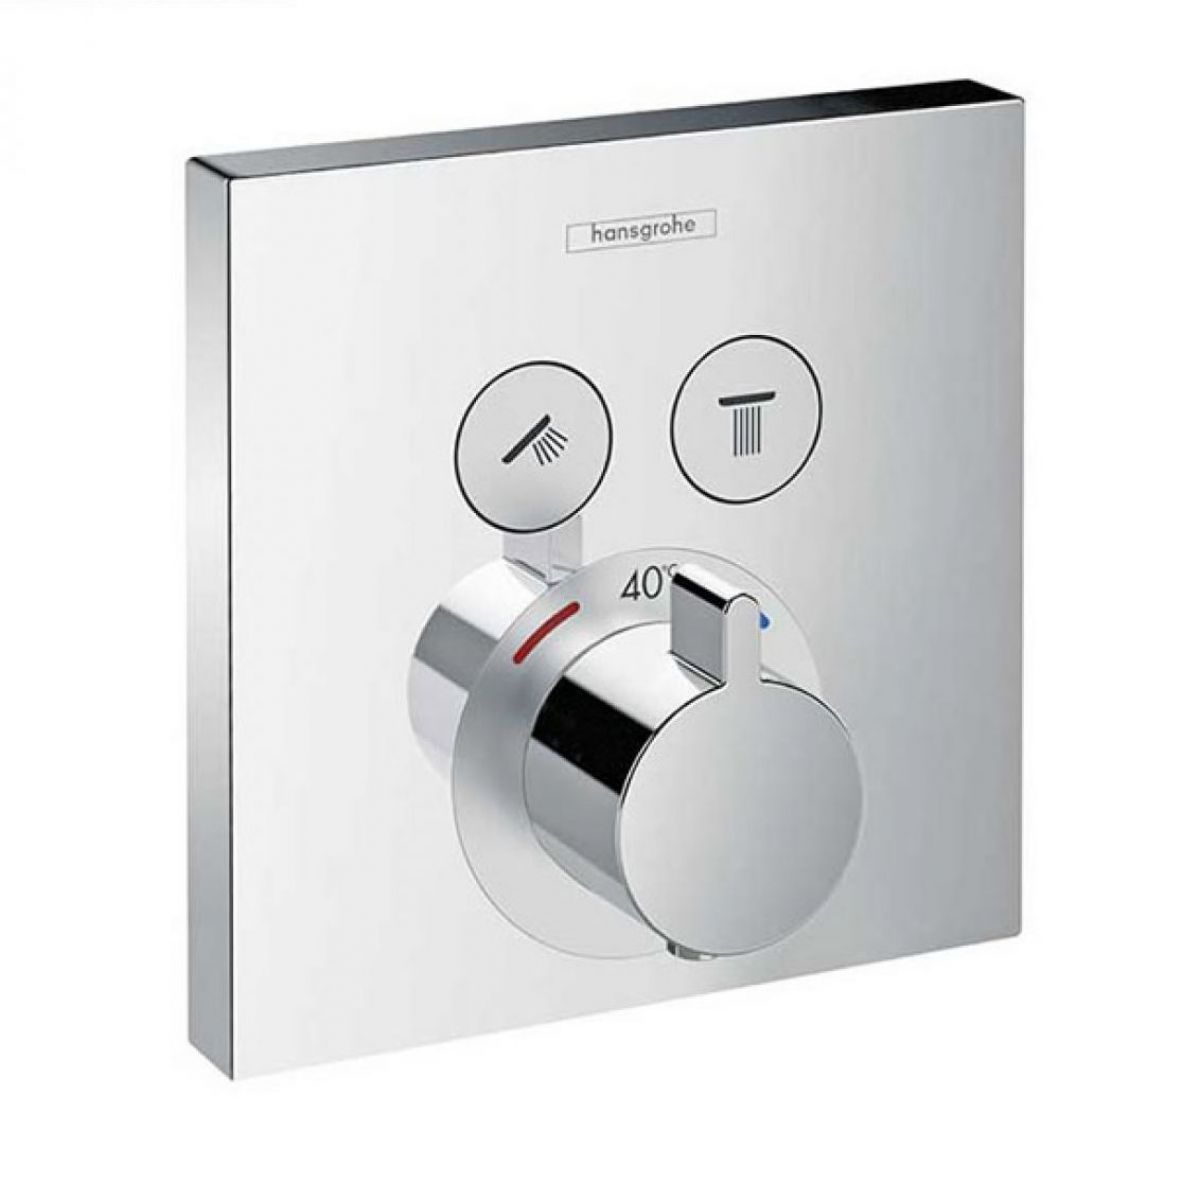 Hansgrohe Showerselect Thermostatic Mixer 2 Outlet Square